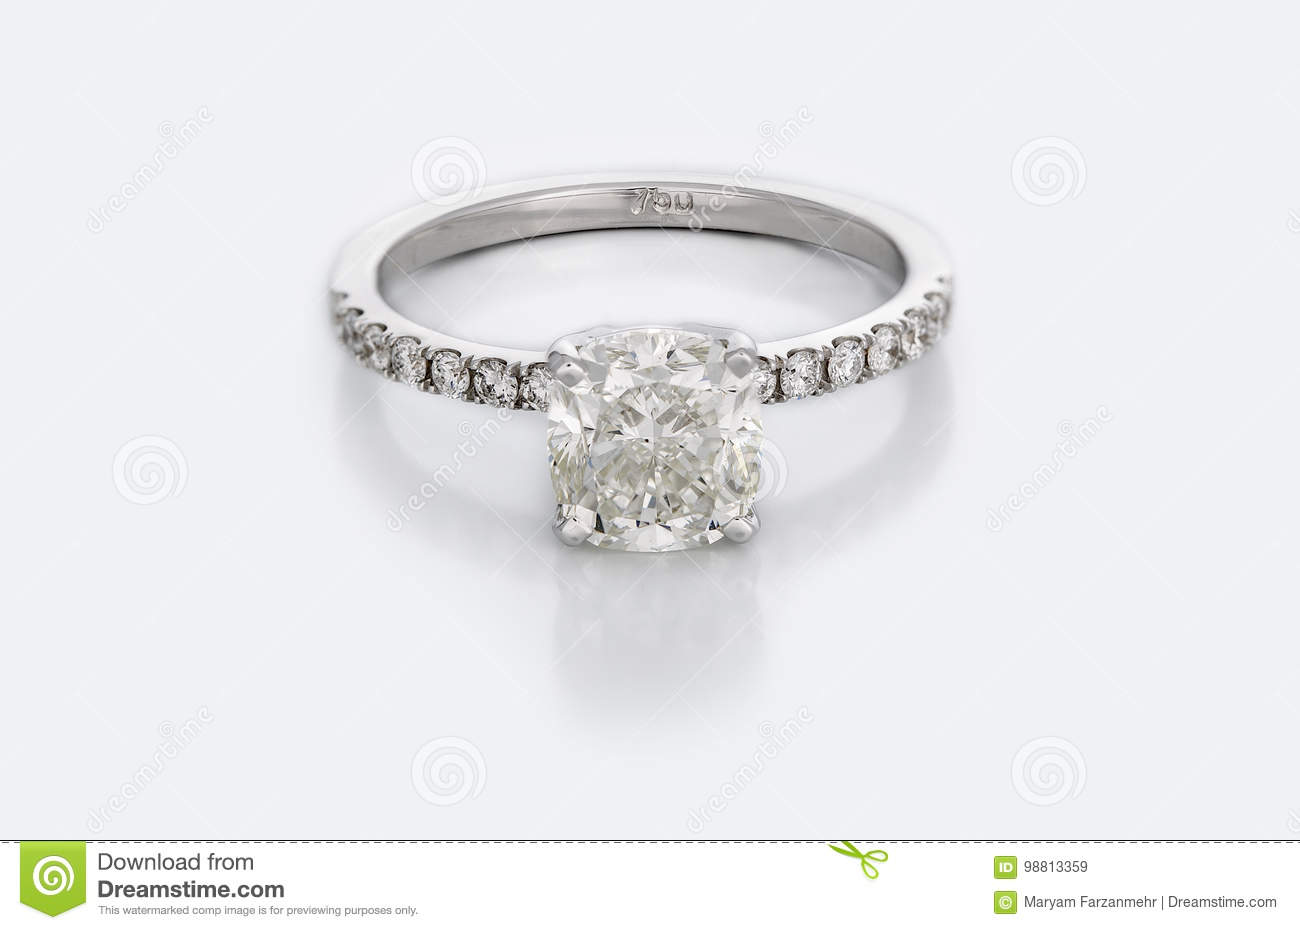 Large Diamond Solitaire Engagement or Wedding Ring